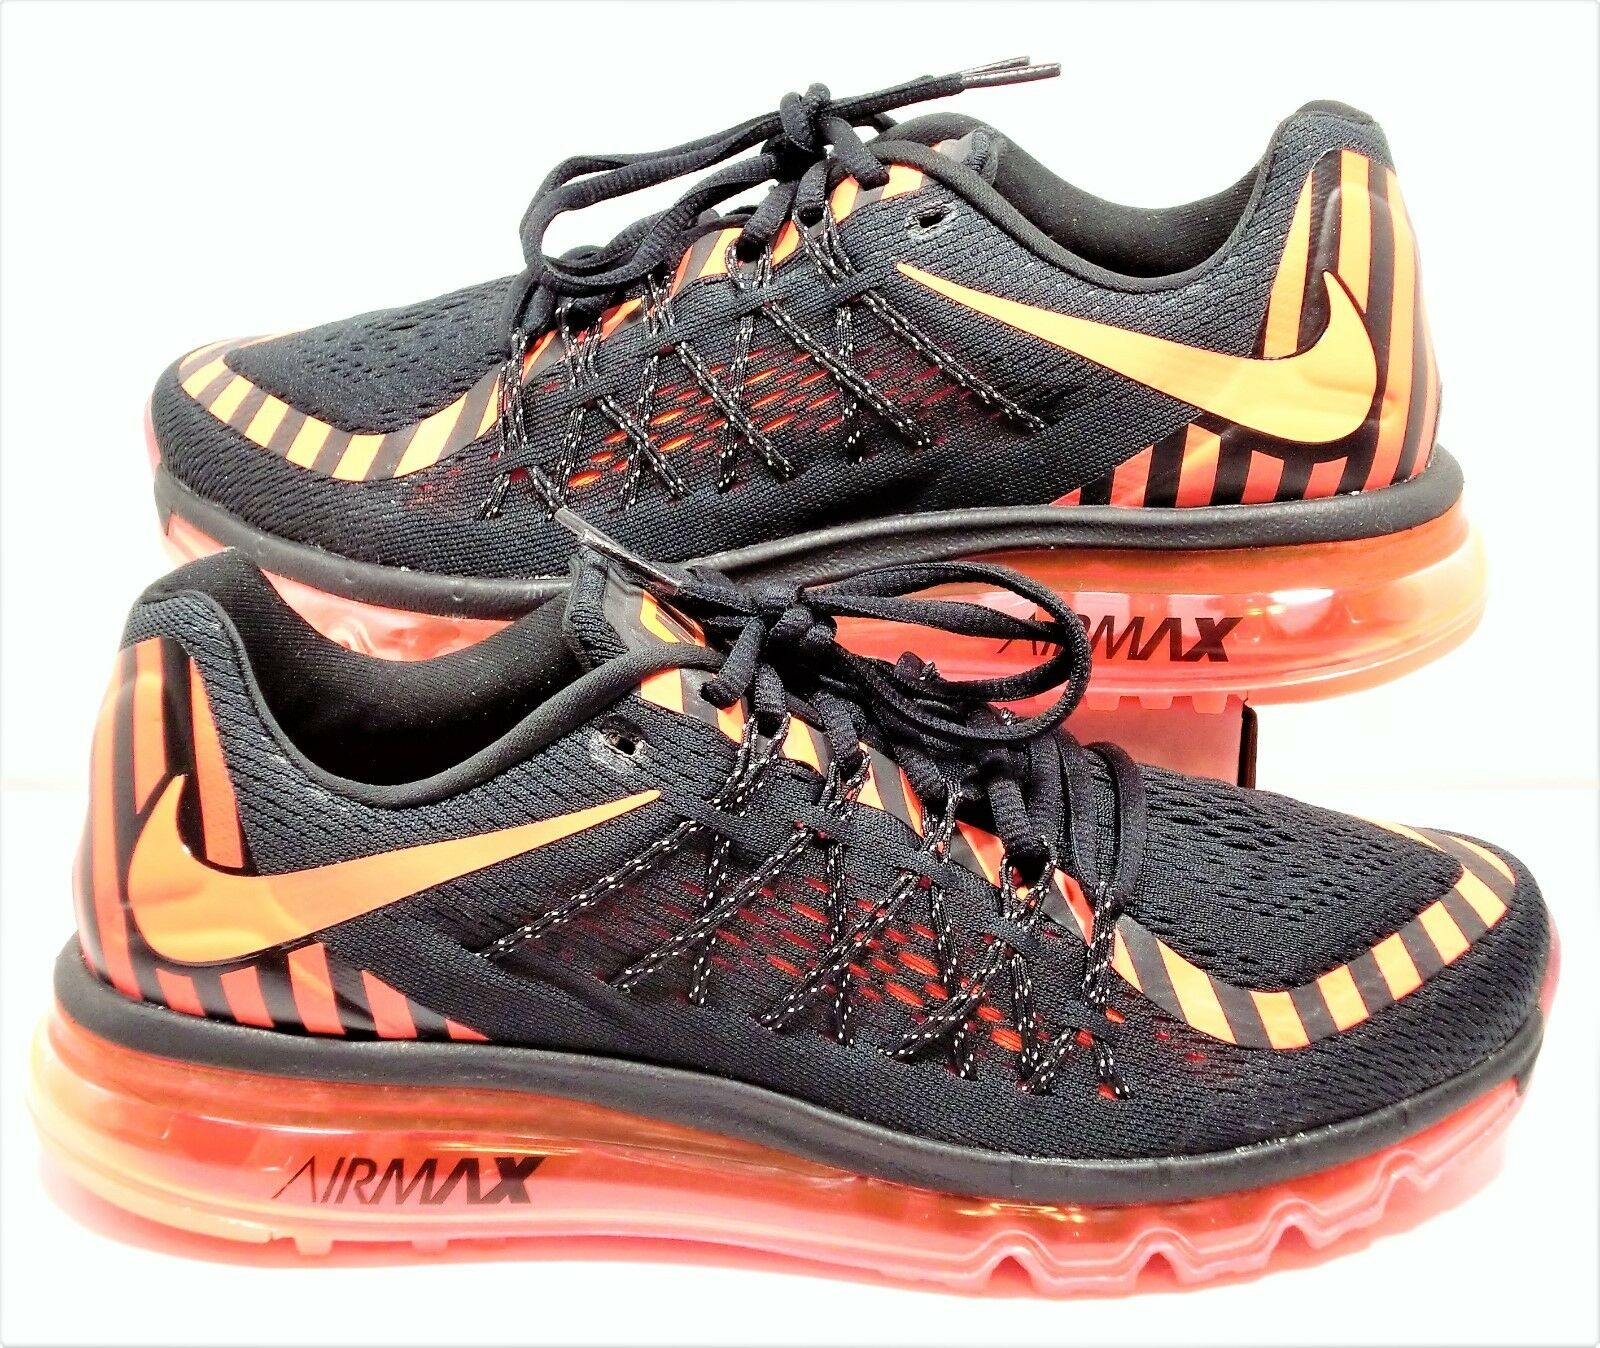 Nike Air Max 2018 Black & Hot Lava Pink Women Running Shoes Sz 7 NEW 746683 011 Great discount